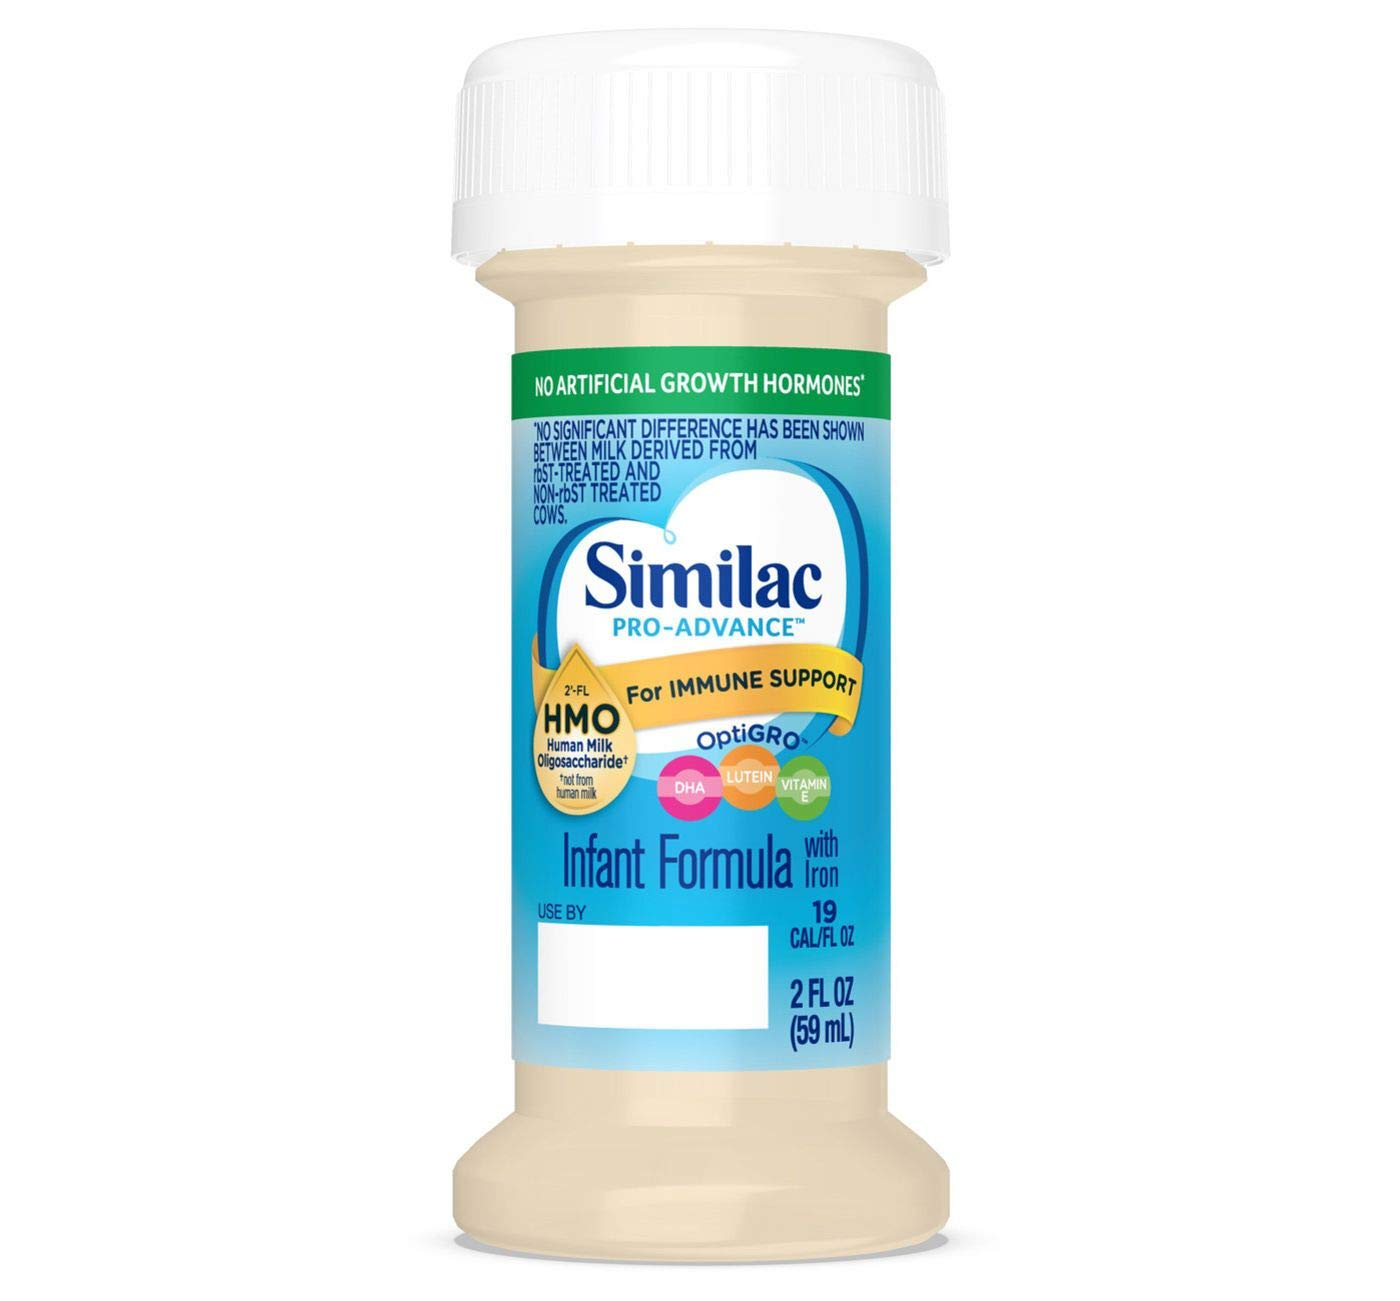 Similac Pro-Advance Infant Formula with 2'-FL HMO for Immune Support Ready to Feed Newborn Bottles, 2 fl oz (Special Discount Offer) (24 by Similac (Image #1)